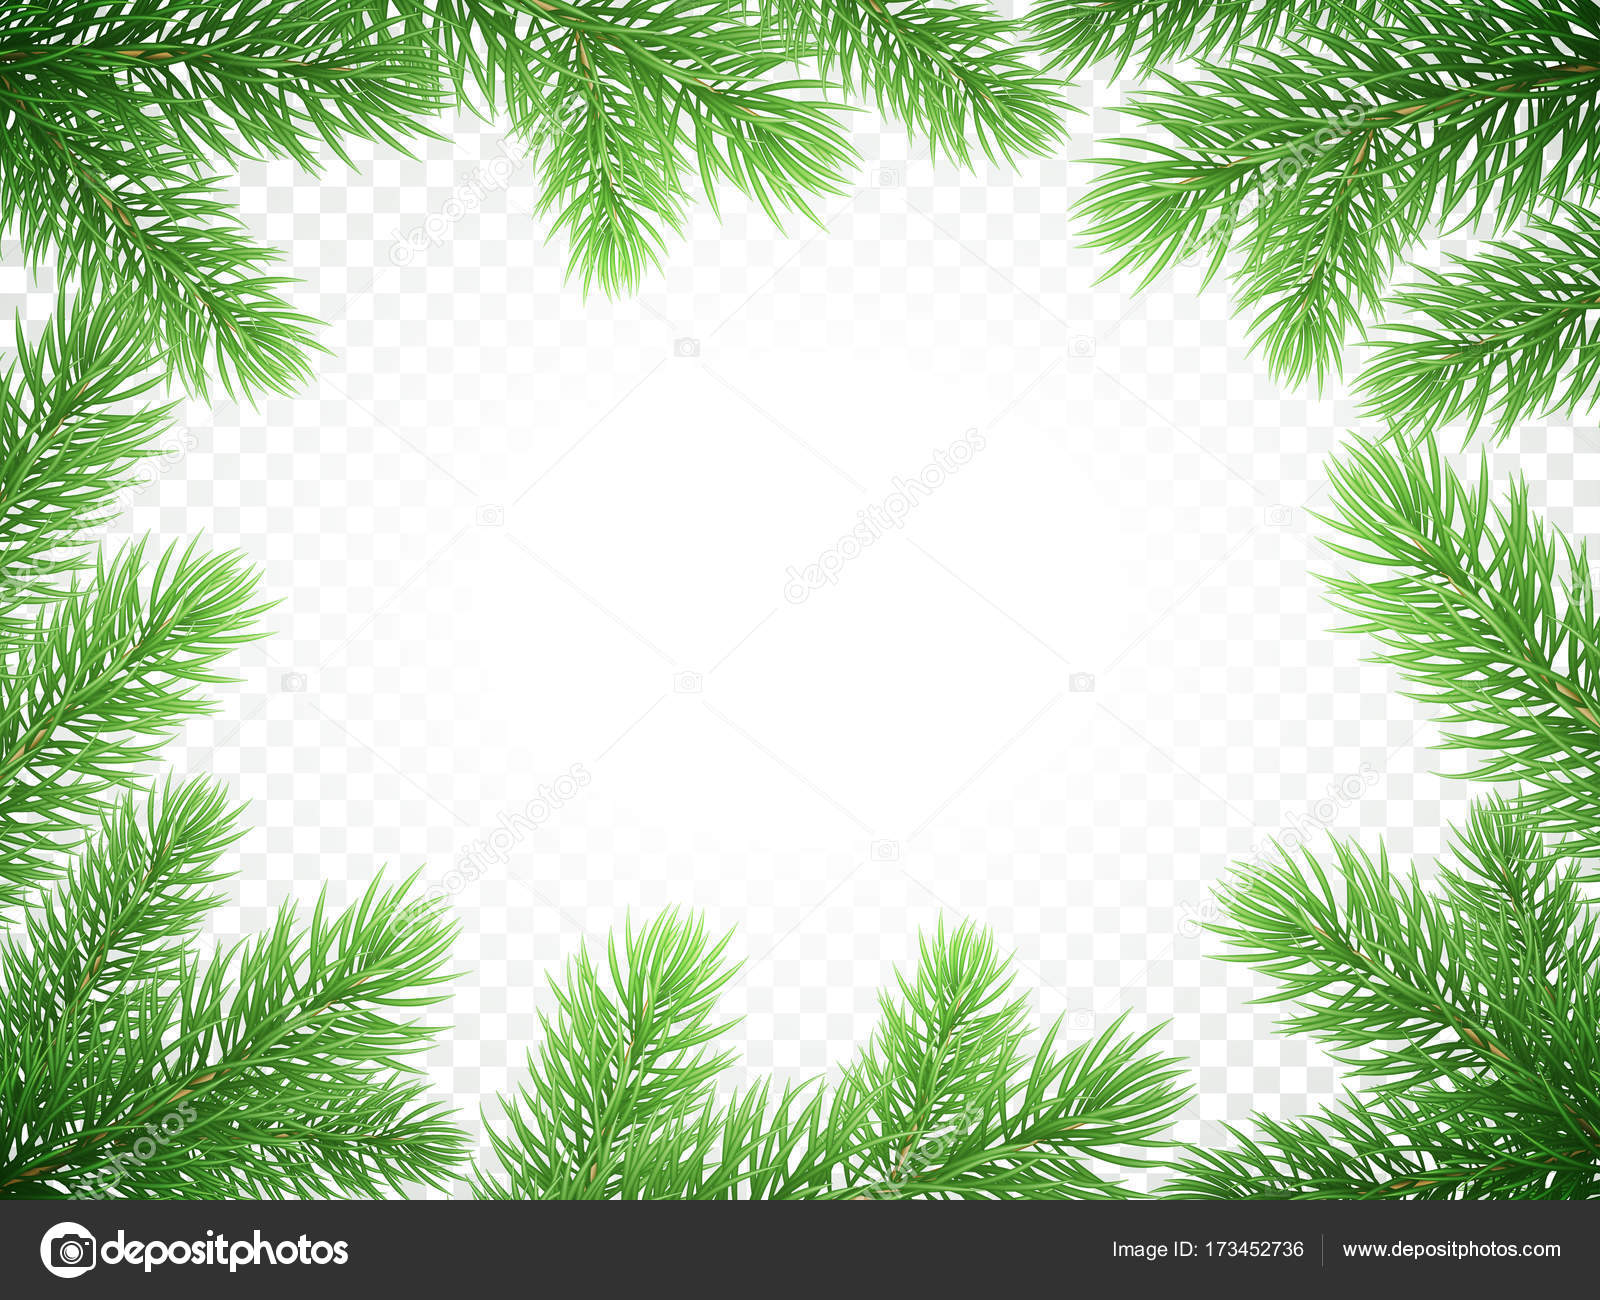 christmas holiday greeting card background template of new year fir or green pine tree branch wreath frame vector christmas or new year banner decoration